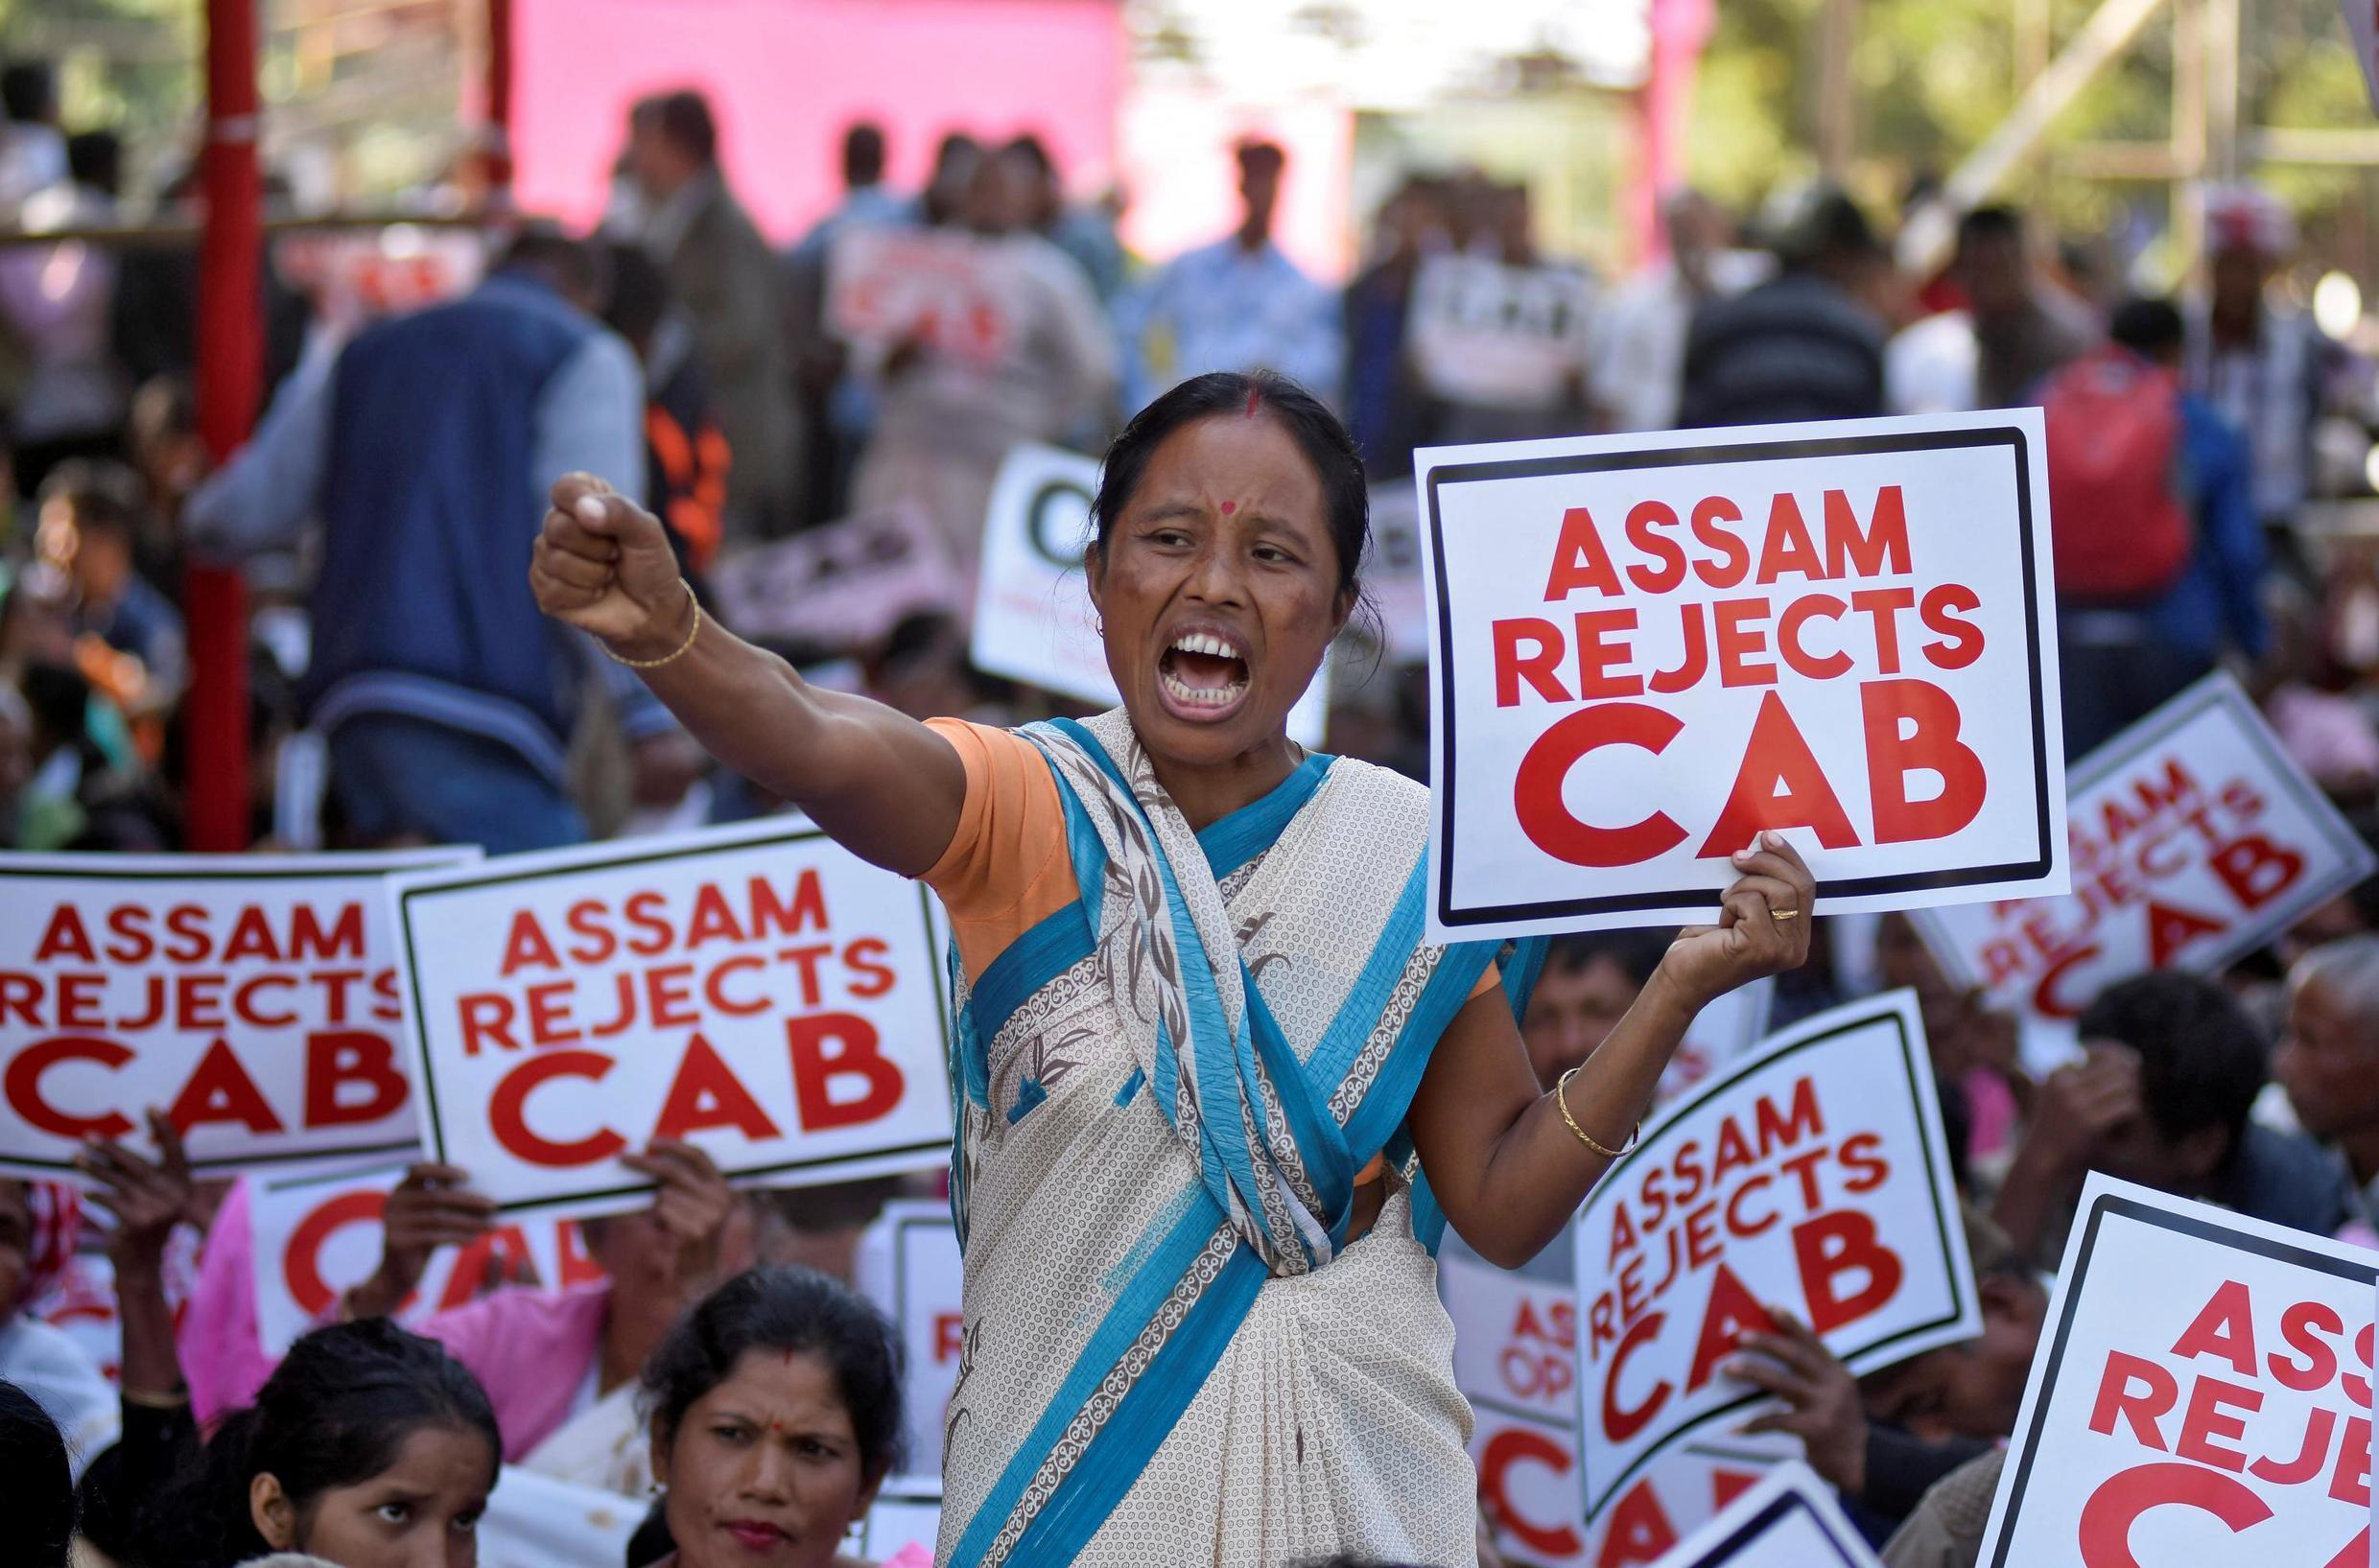 A woman shouts slogans during a protest against the Citizenship Amendment Bill, a bill approved by India's cabinet to give citizenship to religious minorities persecuted in neighboring Muslim countries, in Guwahati, India, December 5, 2019.